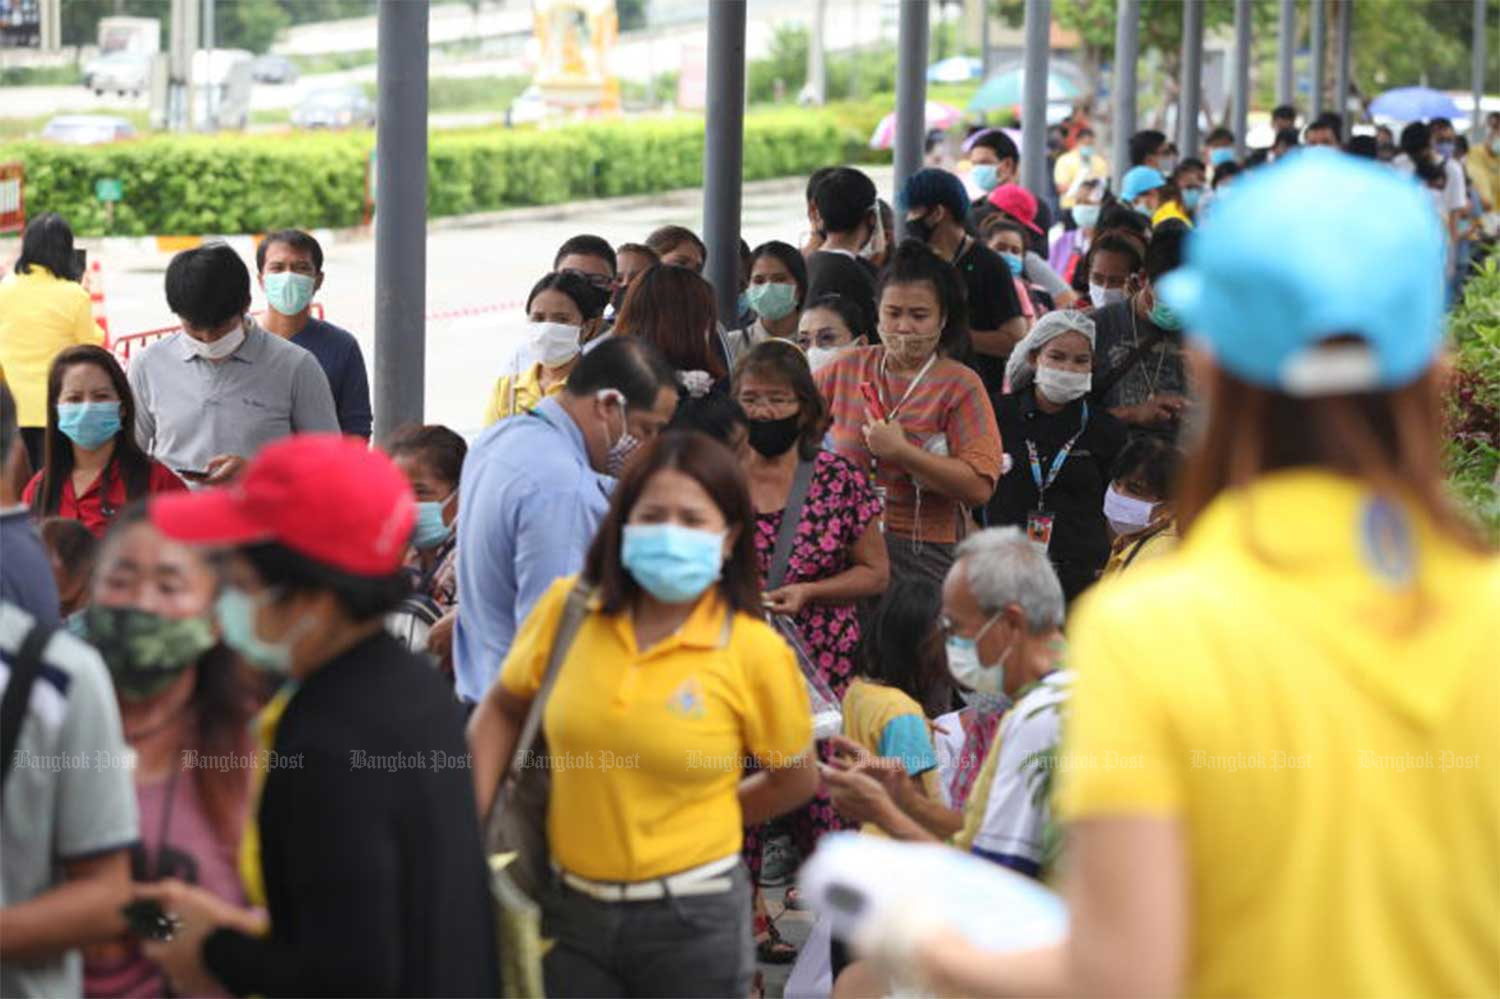 Hundreds of people tracked down through the Thai Chana app queue to be tested by disease control officials at CentralPlaza Rayong department store on July 14. More people were tested in Rayong on July 20. All tests have returned negative. (Bangkok Post file photo)